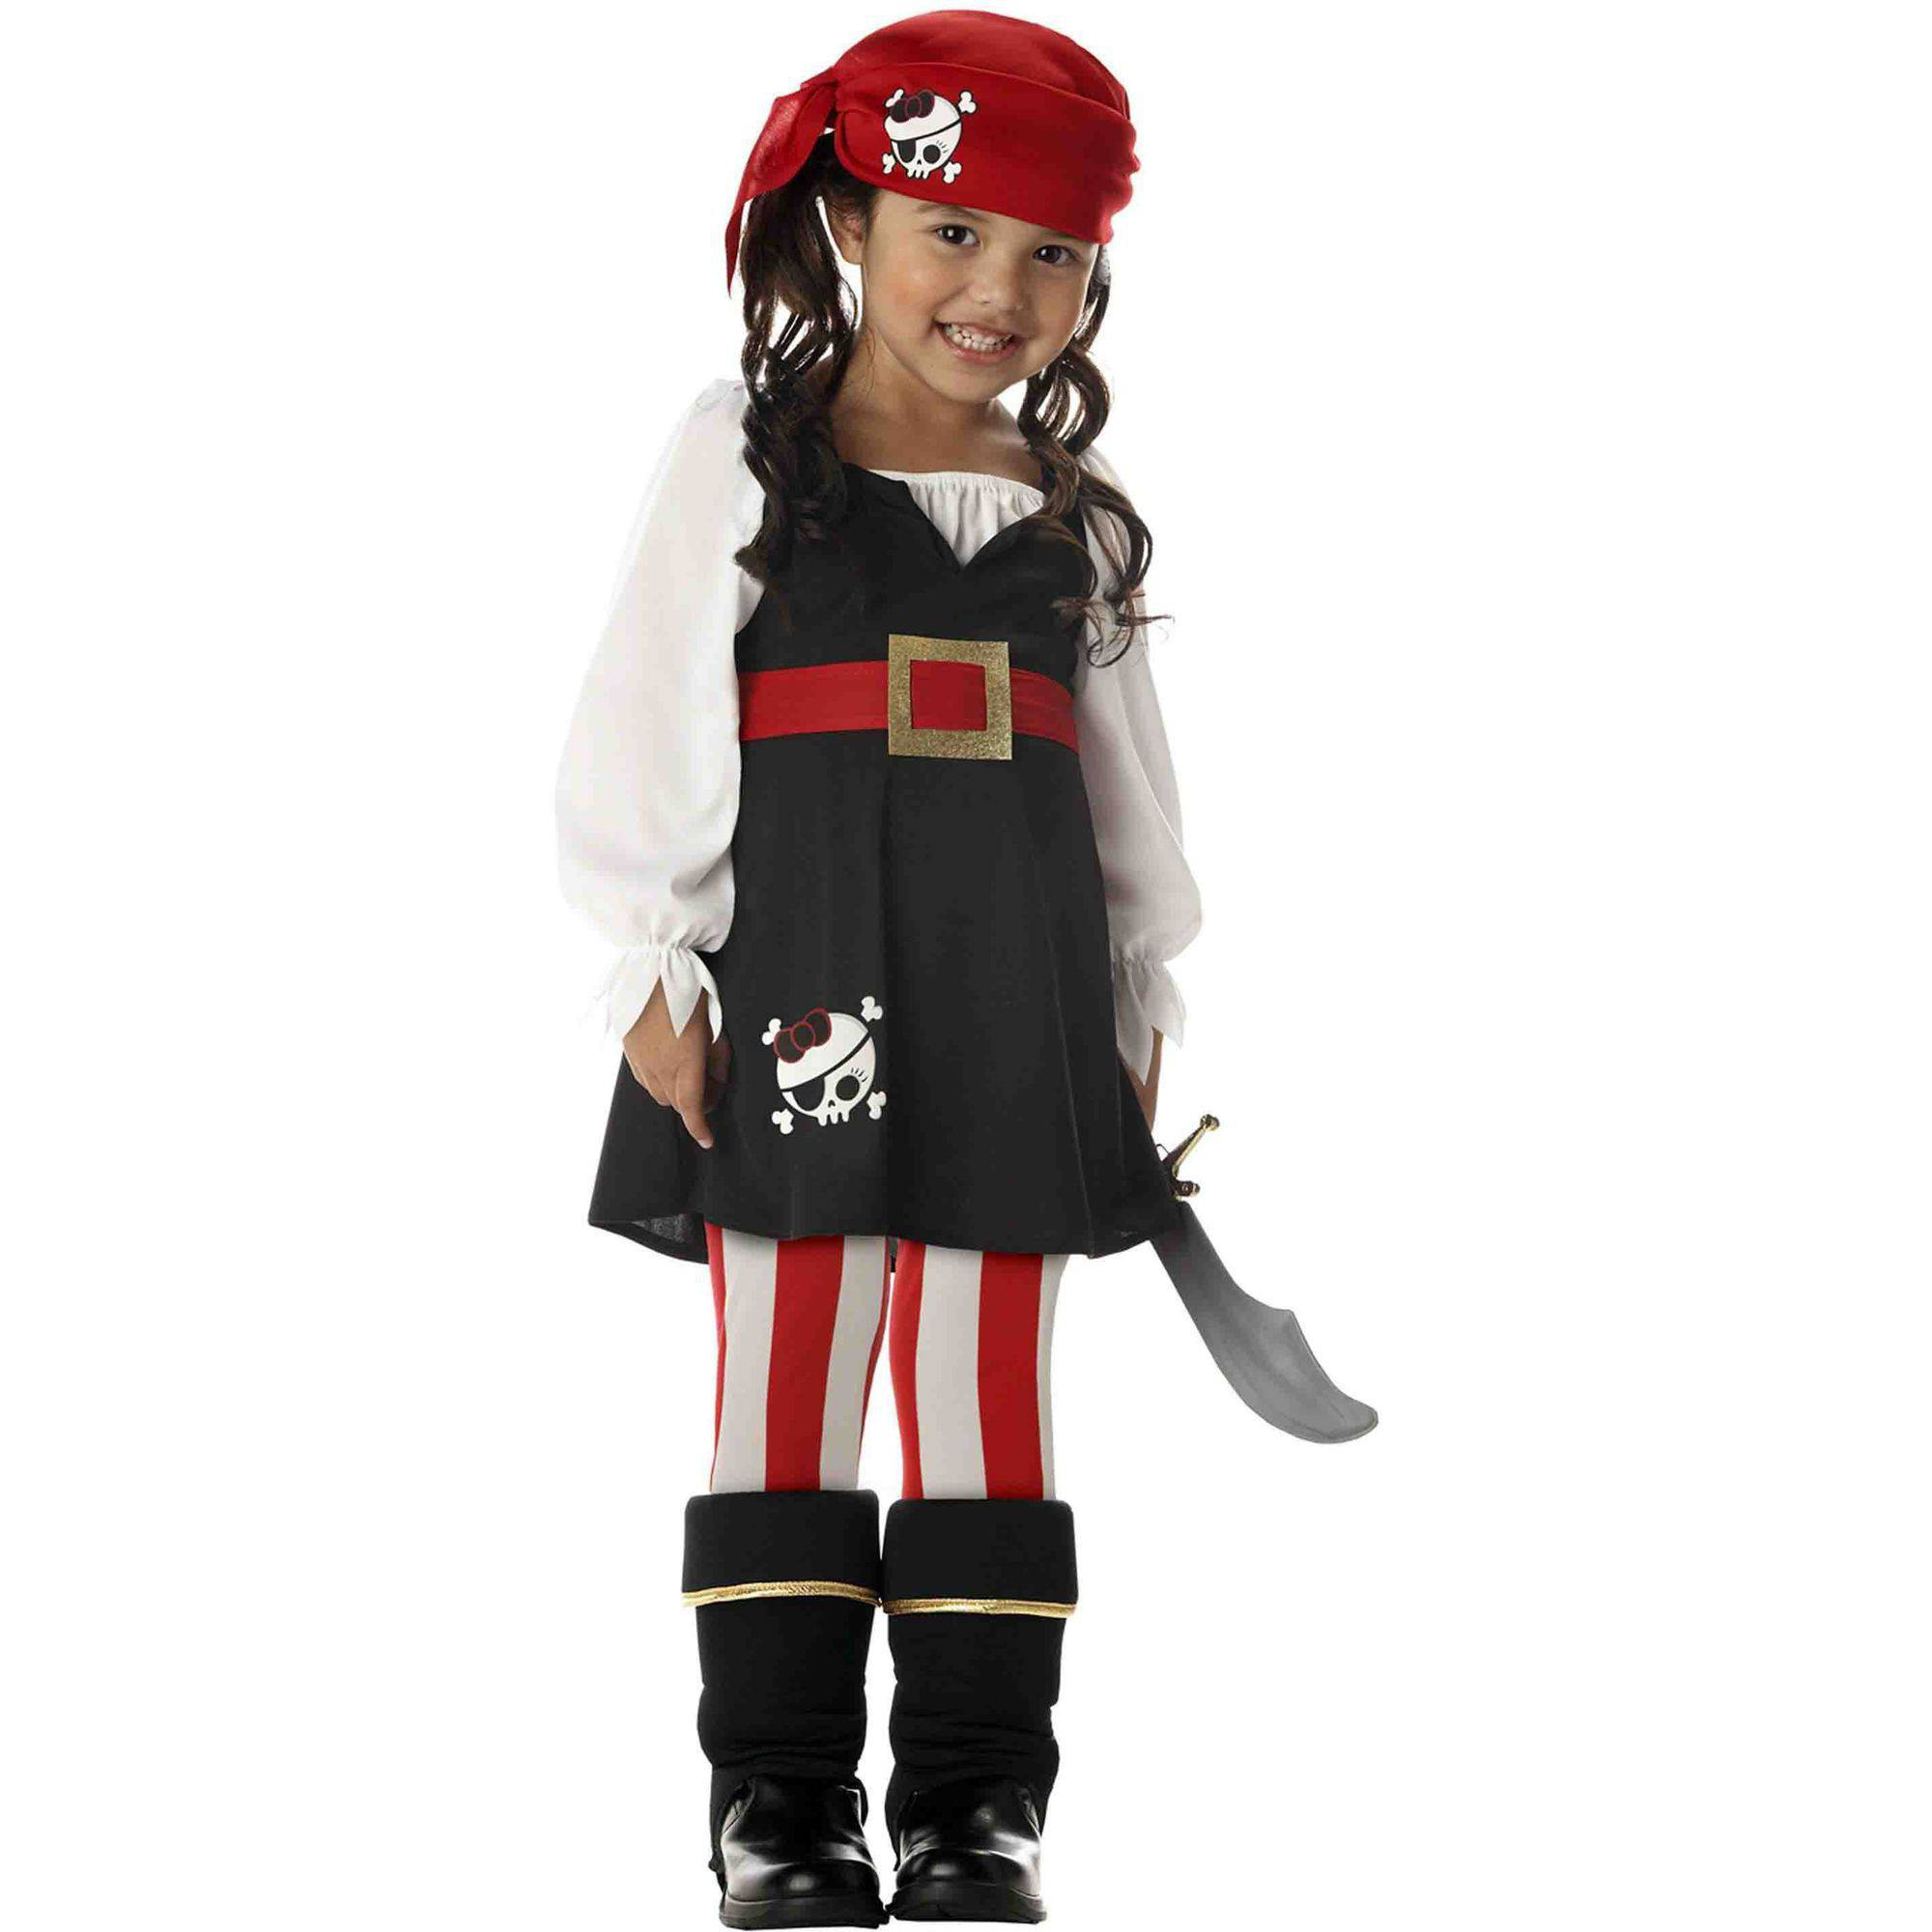 Precious Lil' Pirate Toddler Halloween Costume, Size 3T-4T